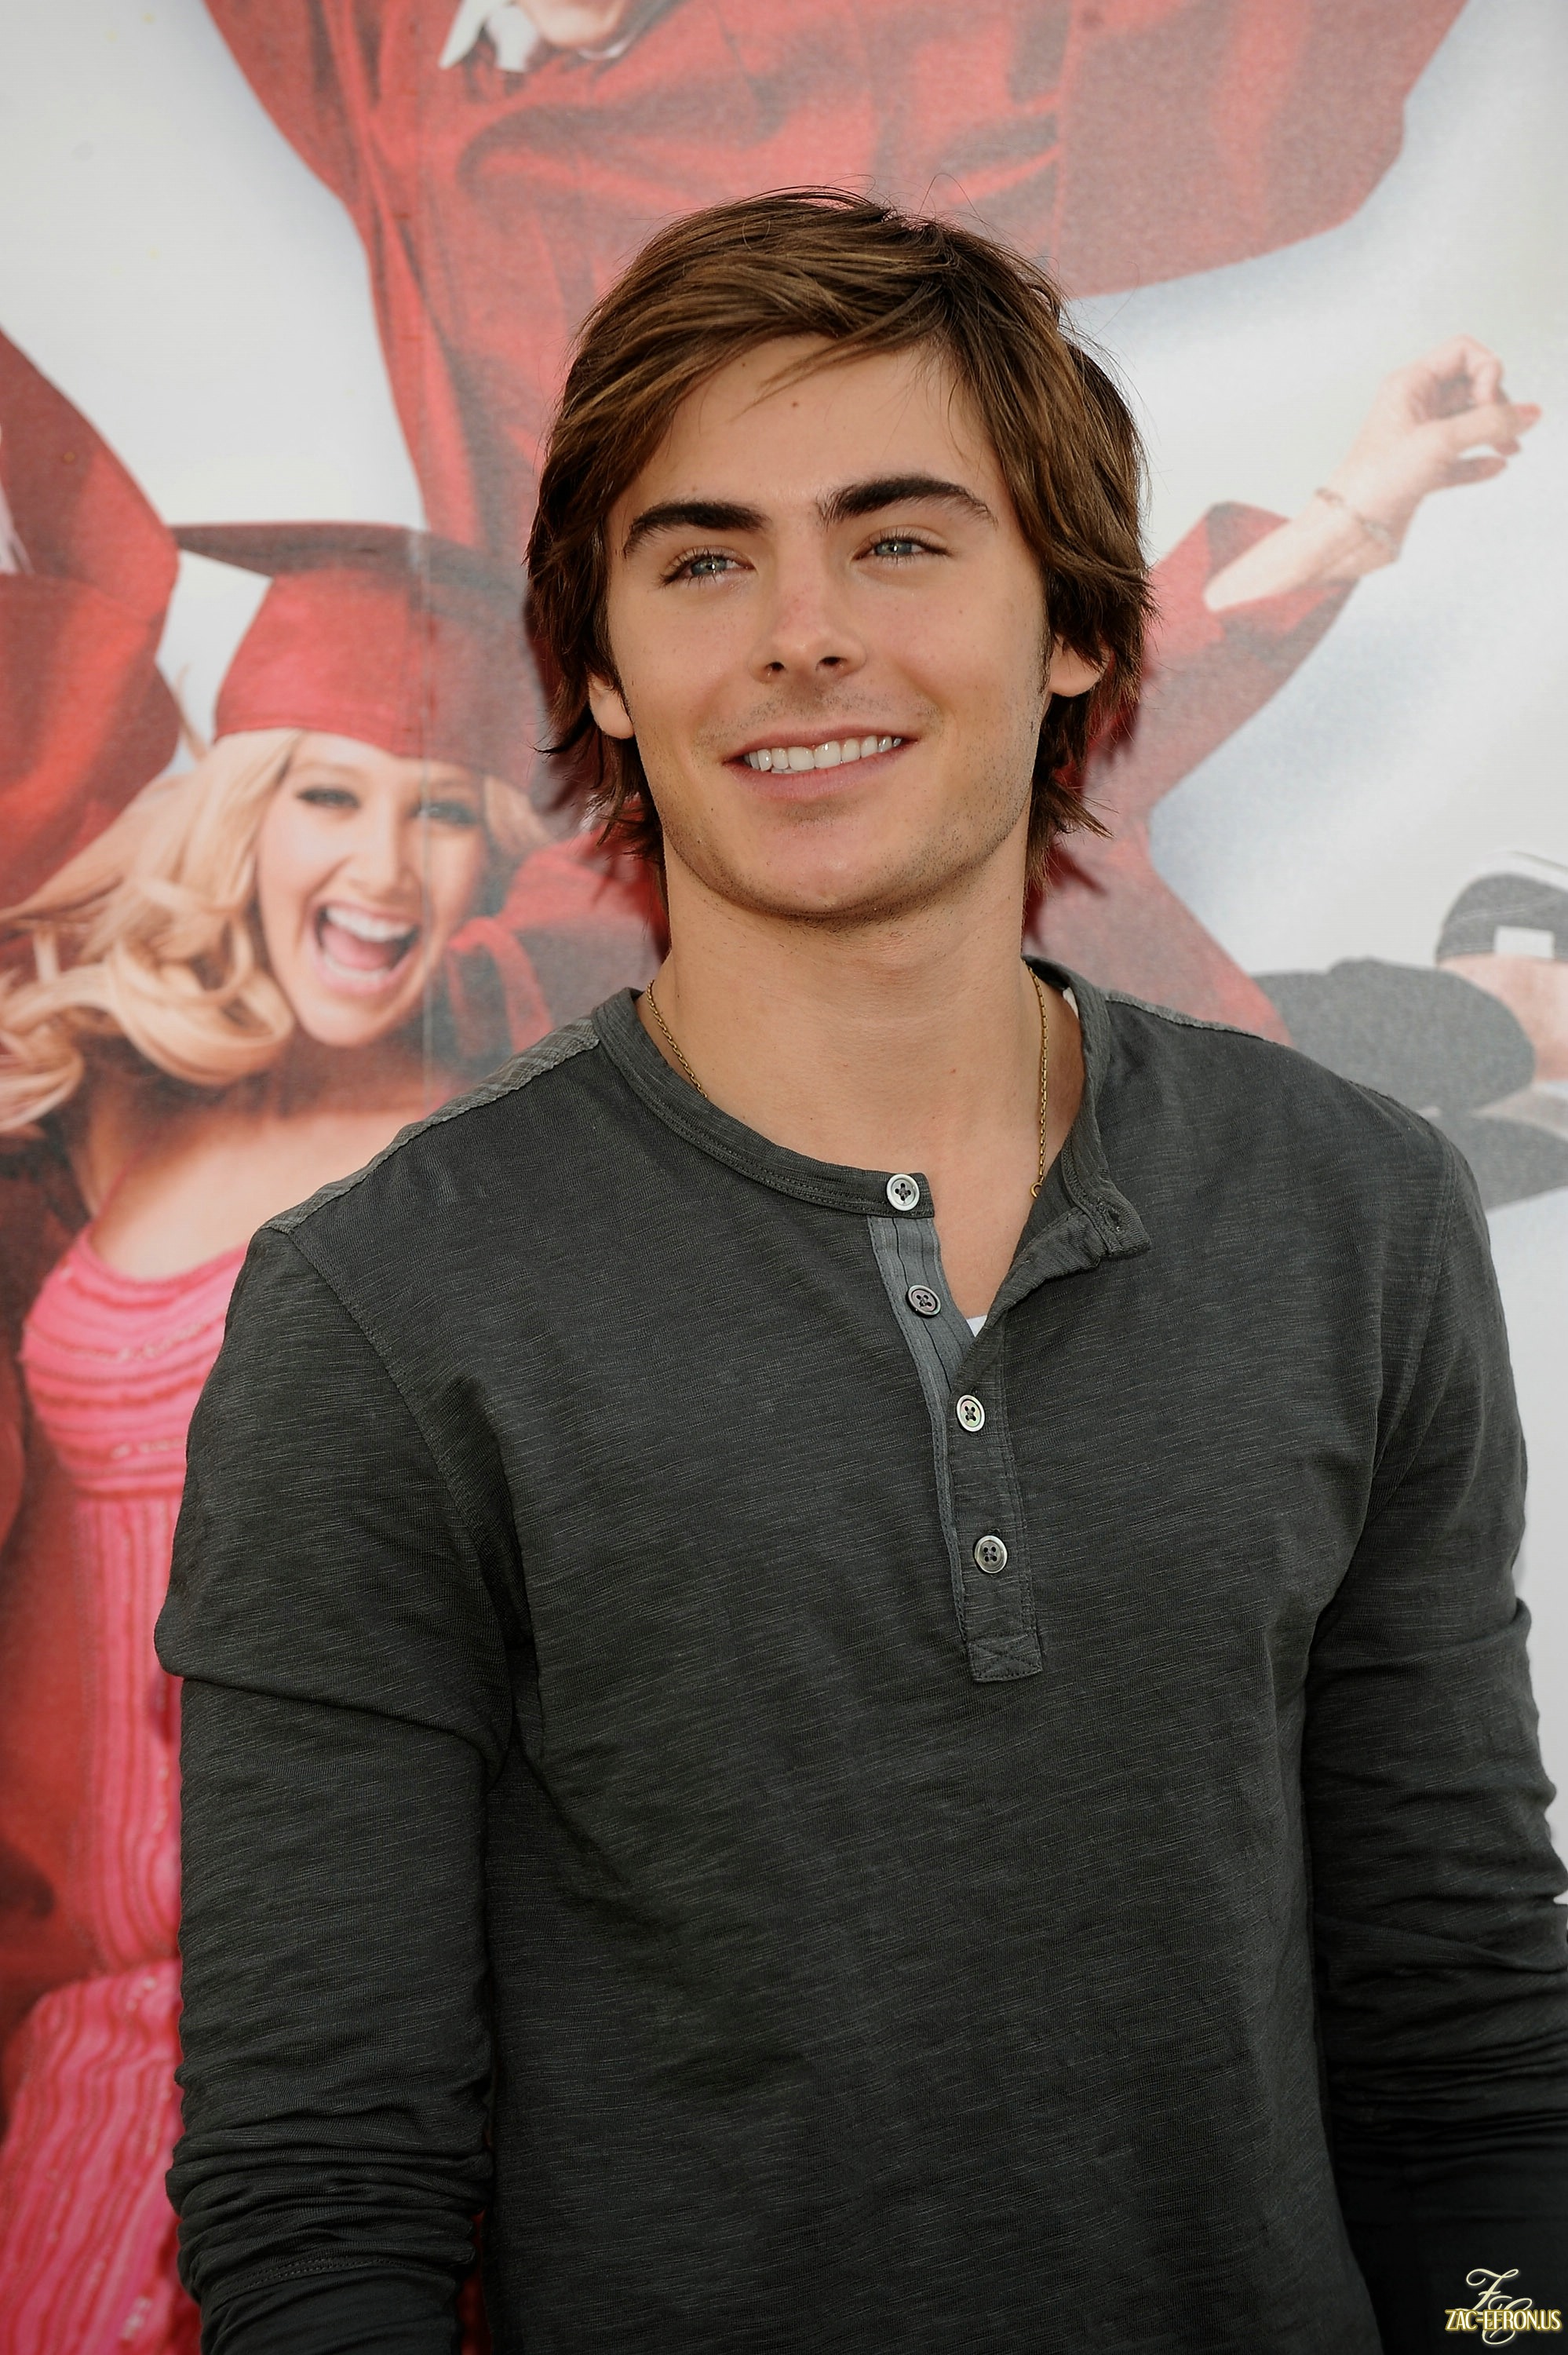 Zac Efron photo #743444